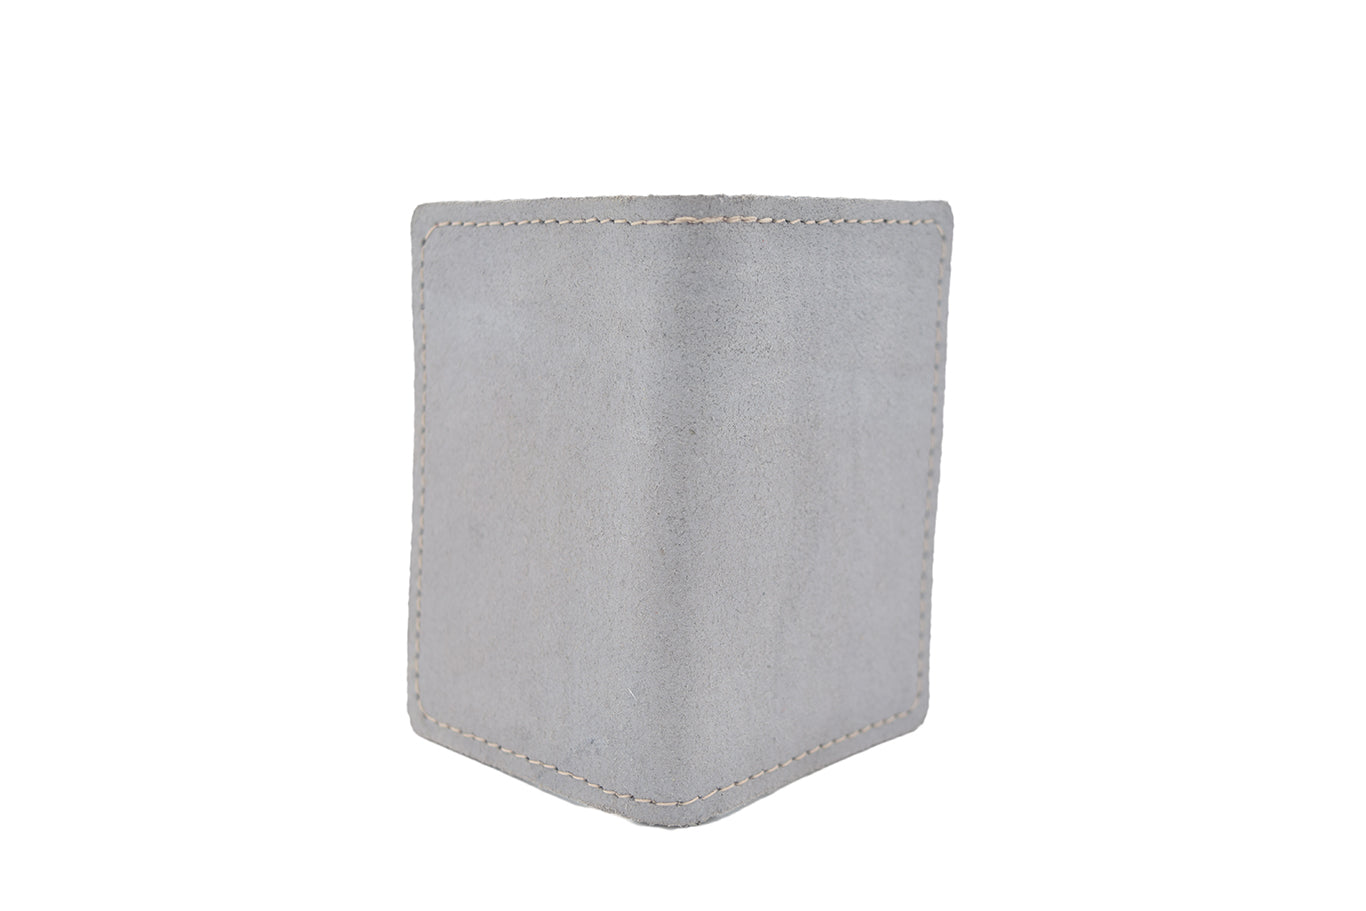 Vintage Grey Unisex Handmade Oyster Travel Card Holder Wallet ID in Leather, Cowhide, Nubuck and Suede